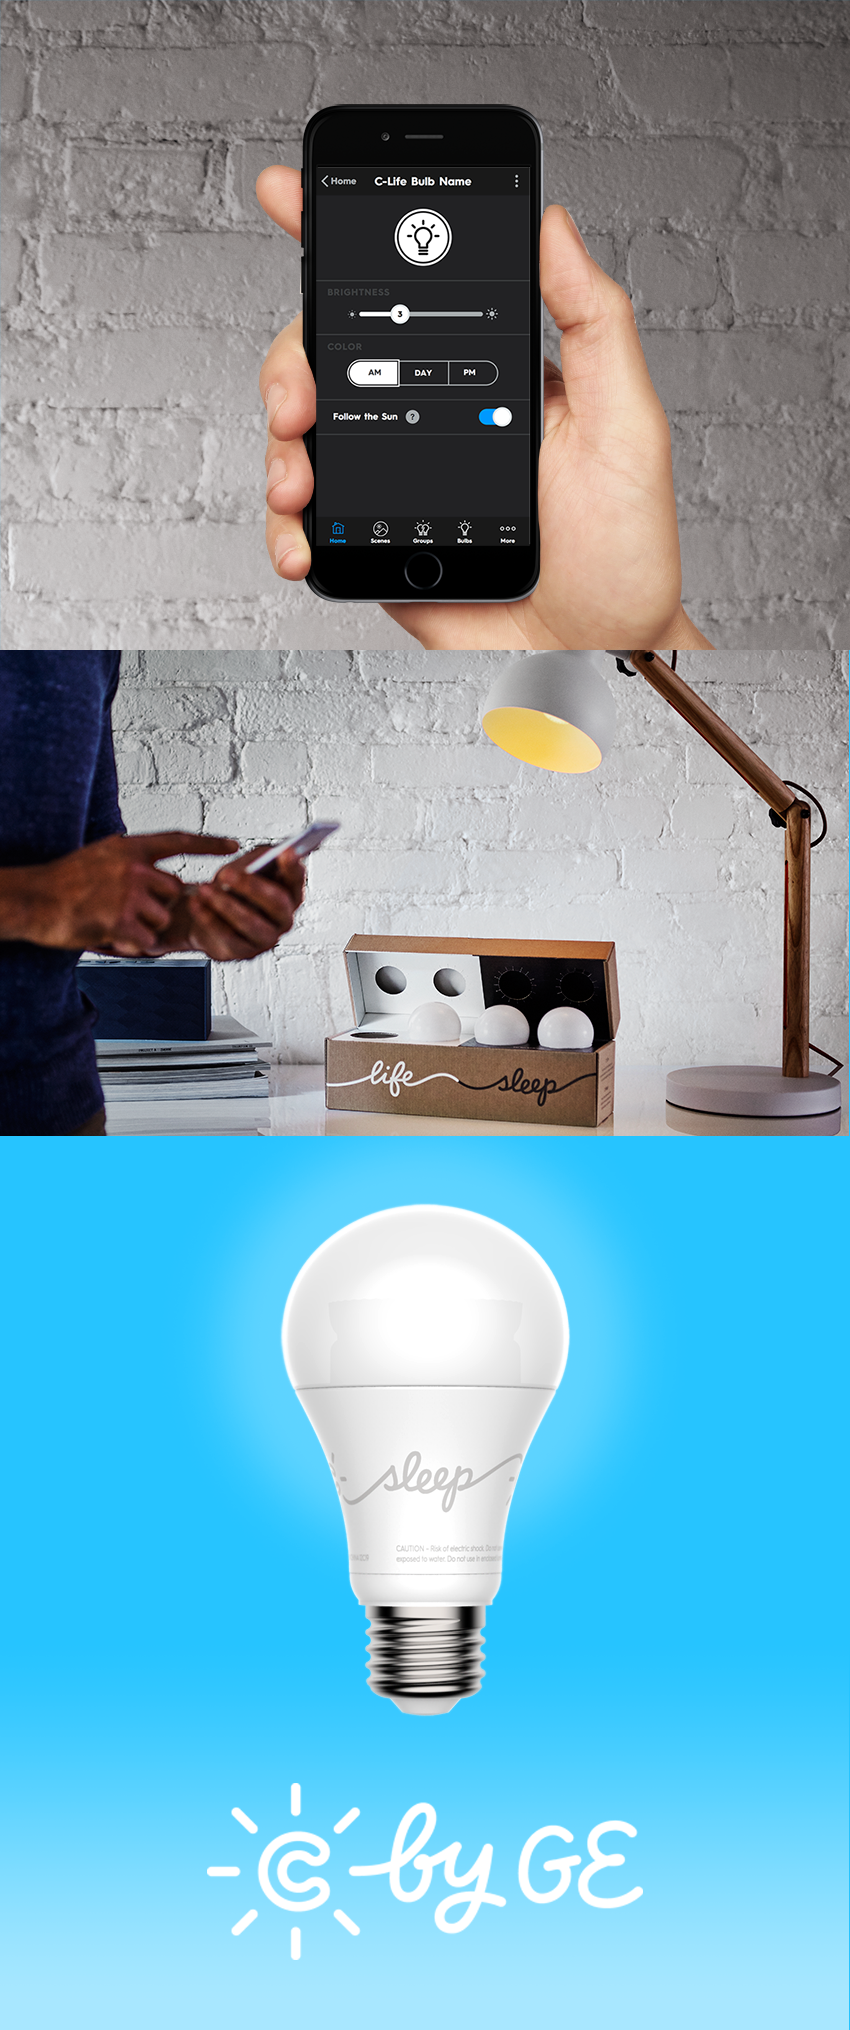 Introducing the first smart no-hub LED light that you can control ...